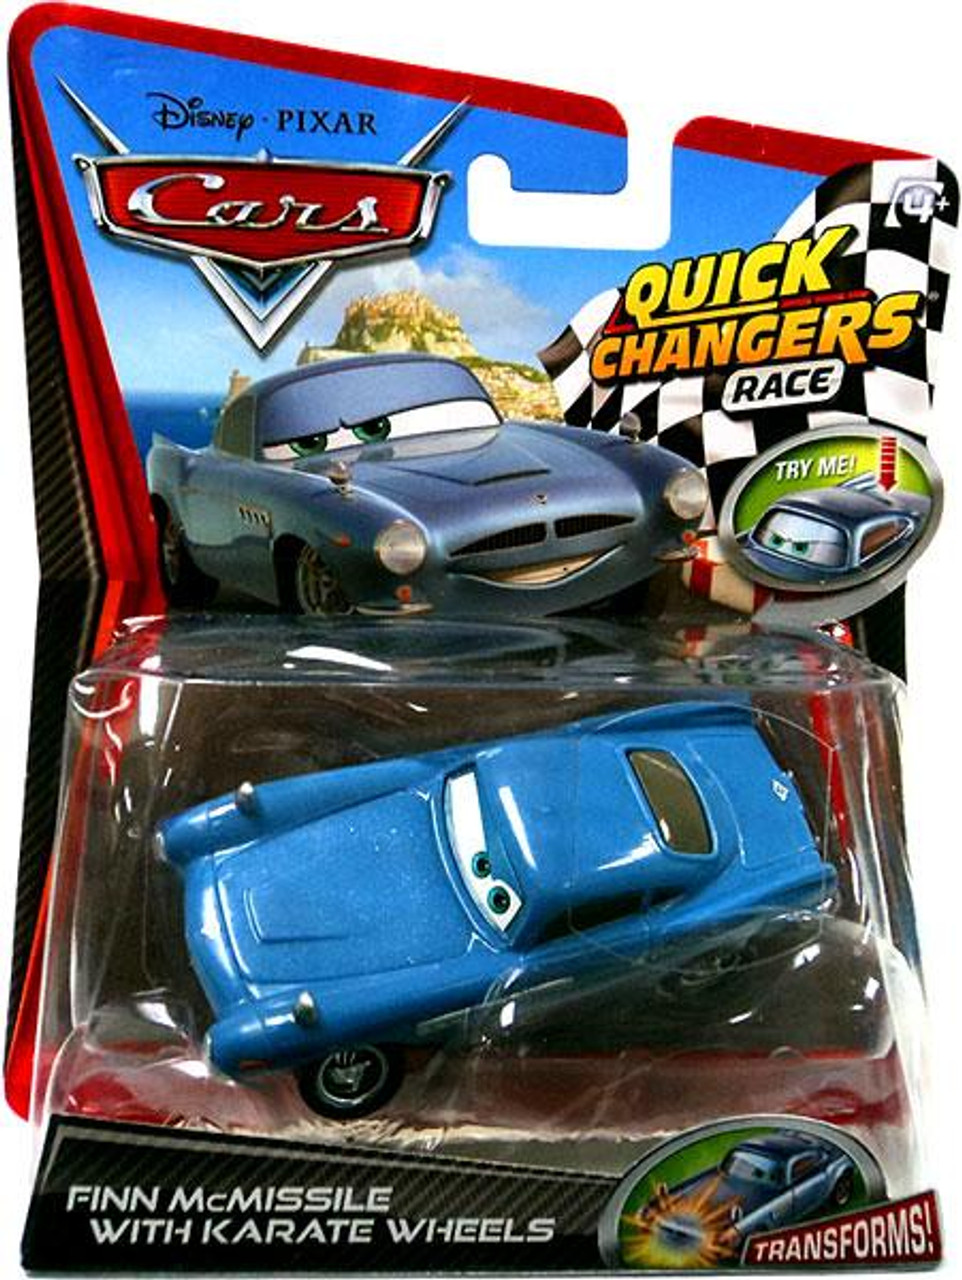 Disney Cars Cars 2 Quick Changers Race Finn Mcmissile With Karate Whee...